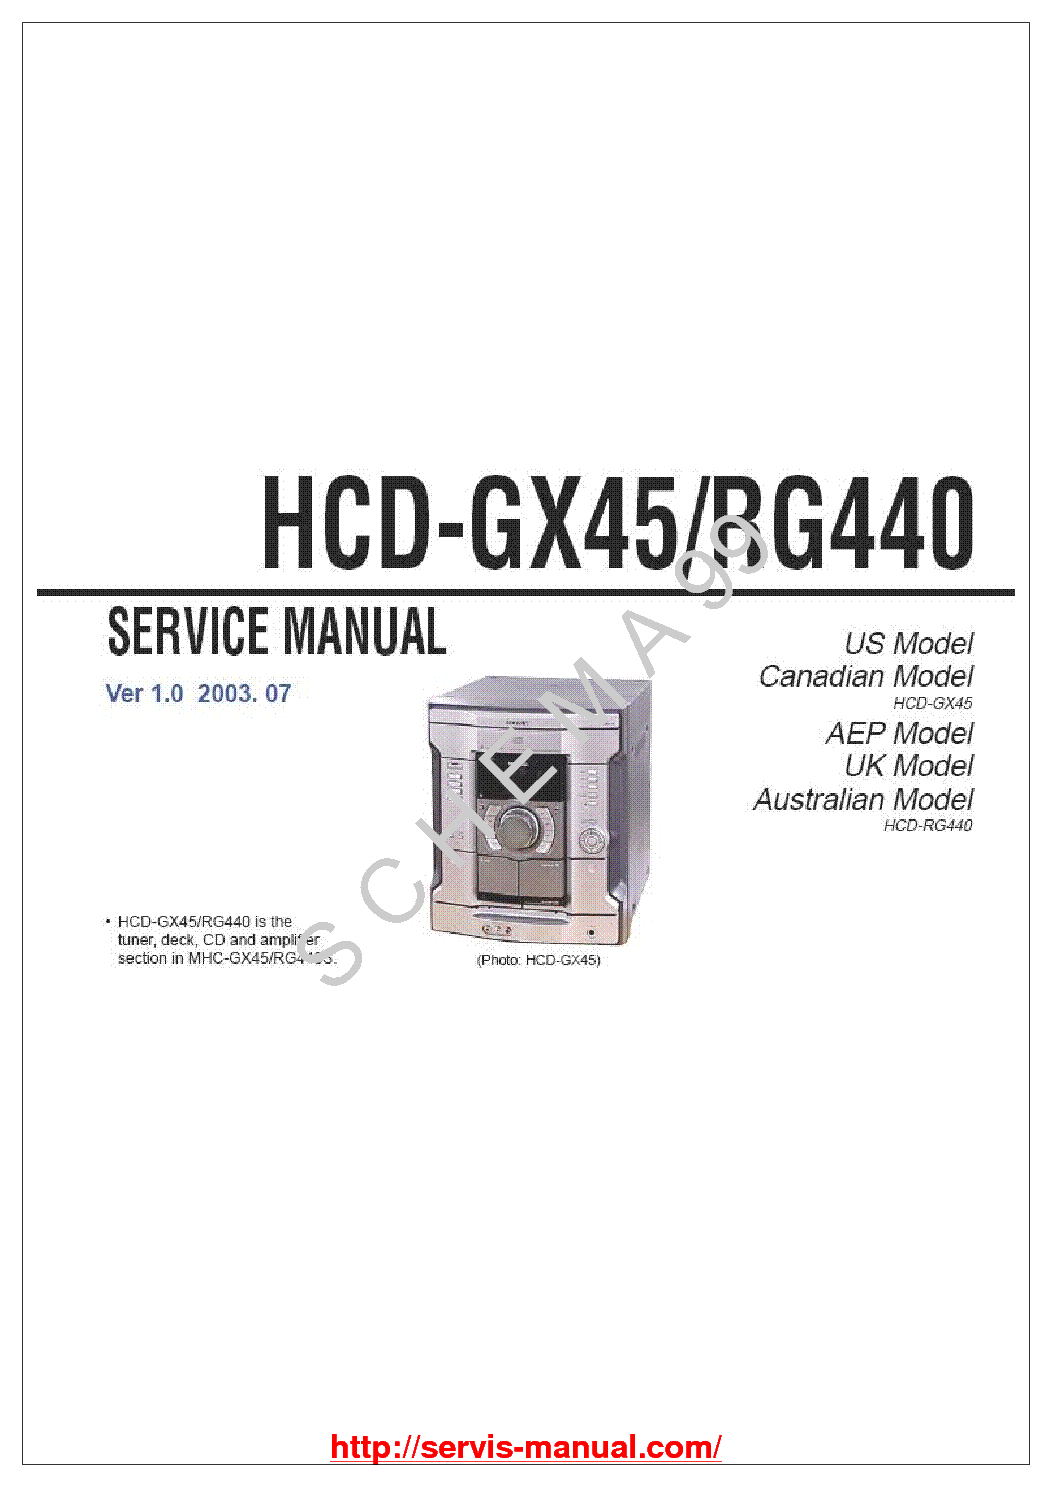 SONY HCD-GX45 RG440 VER-1.0 service manual